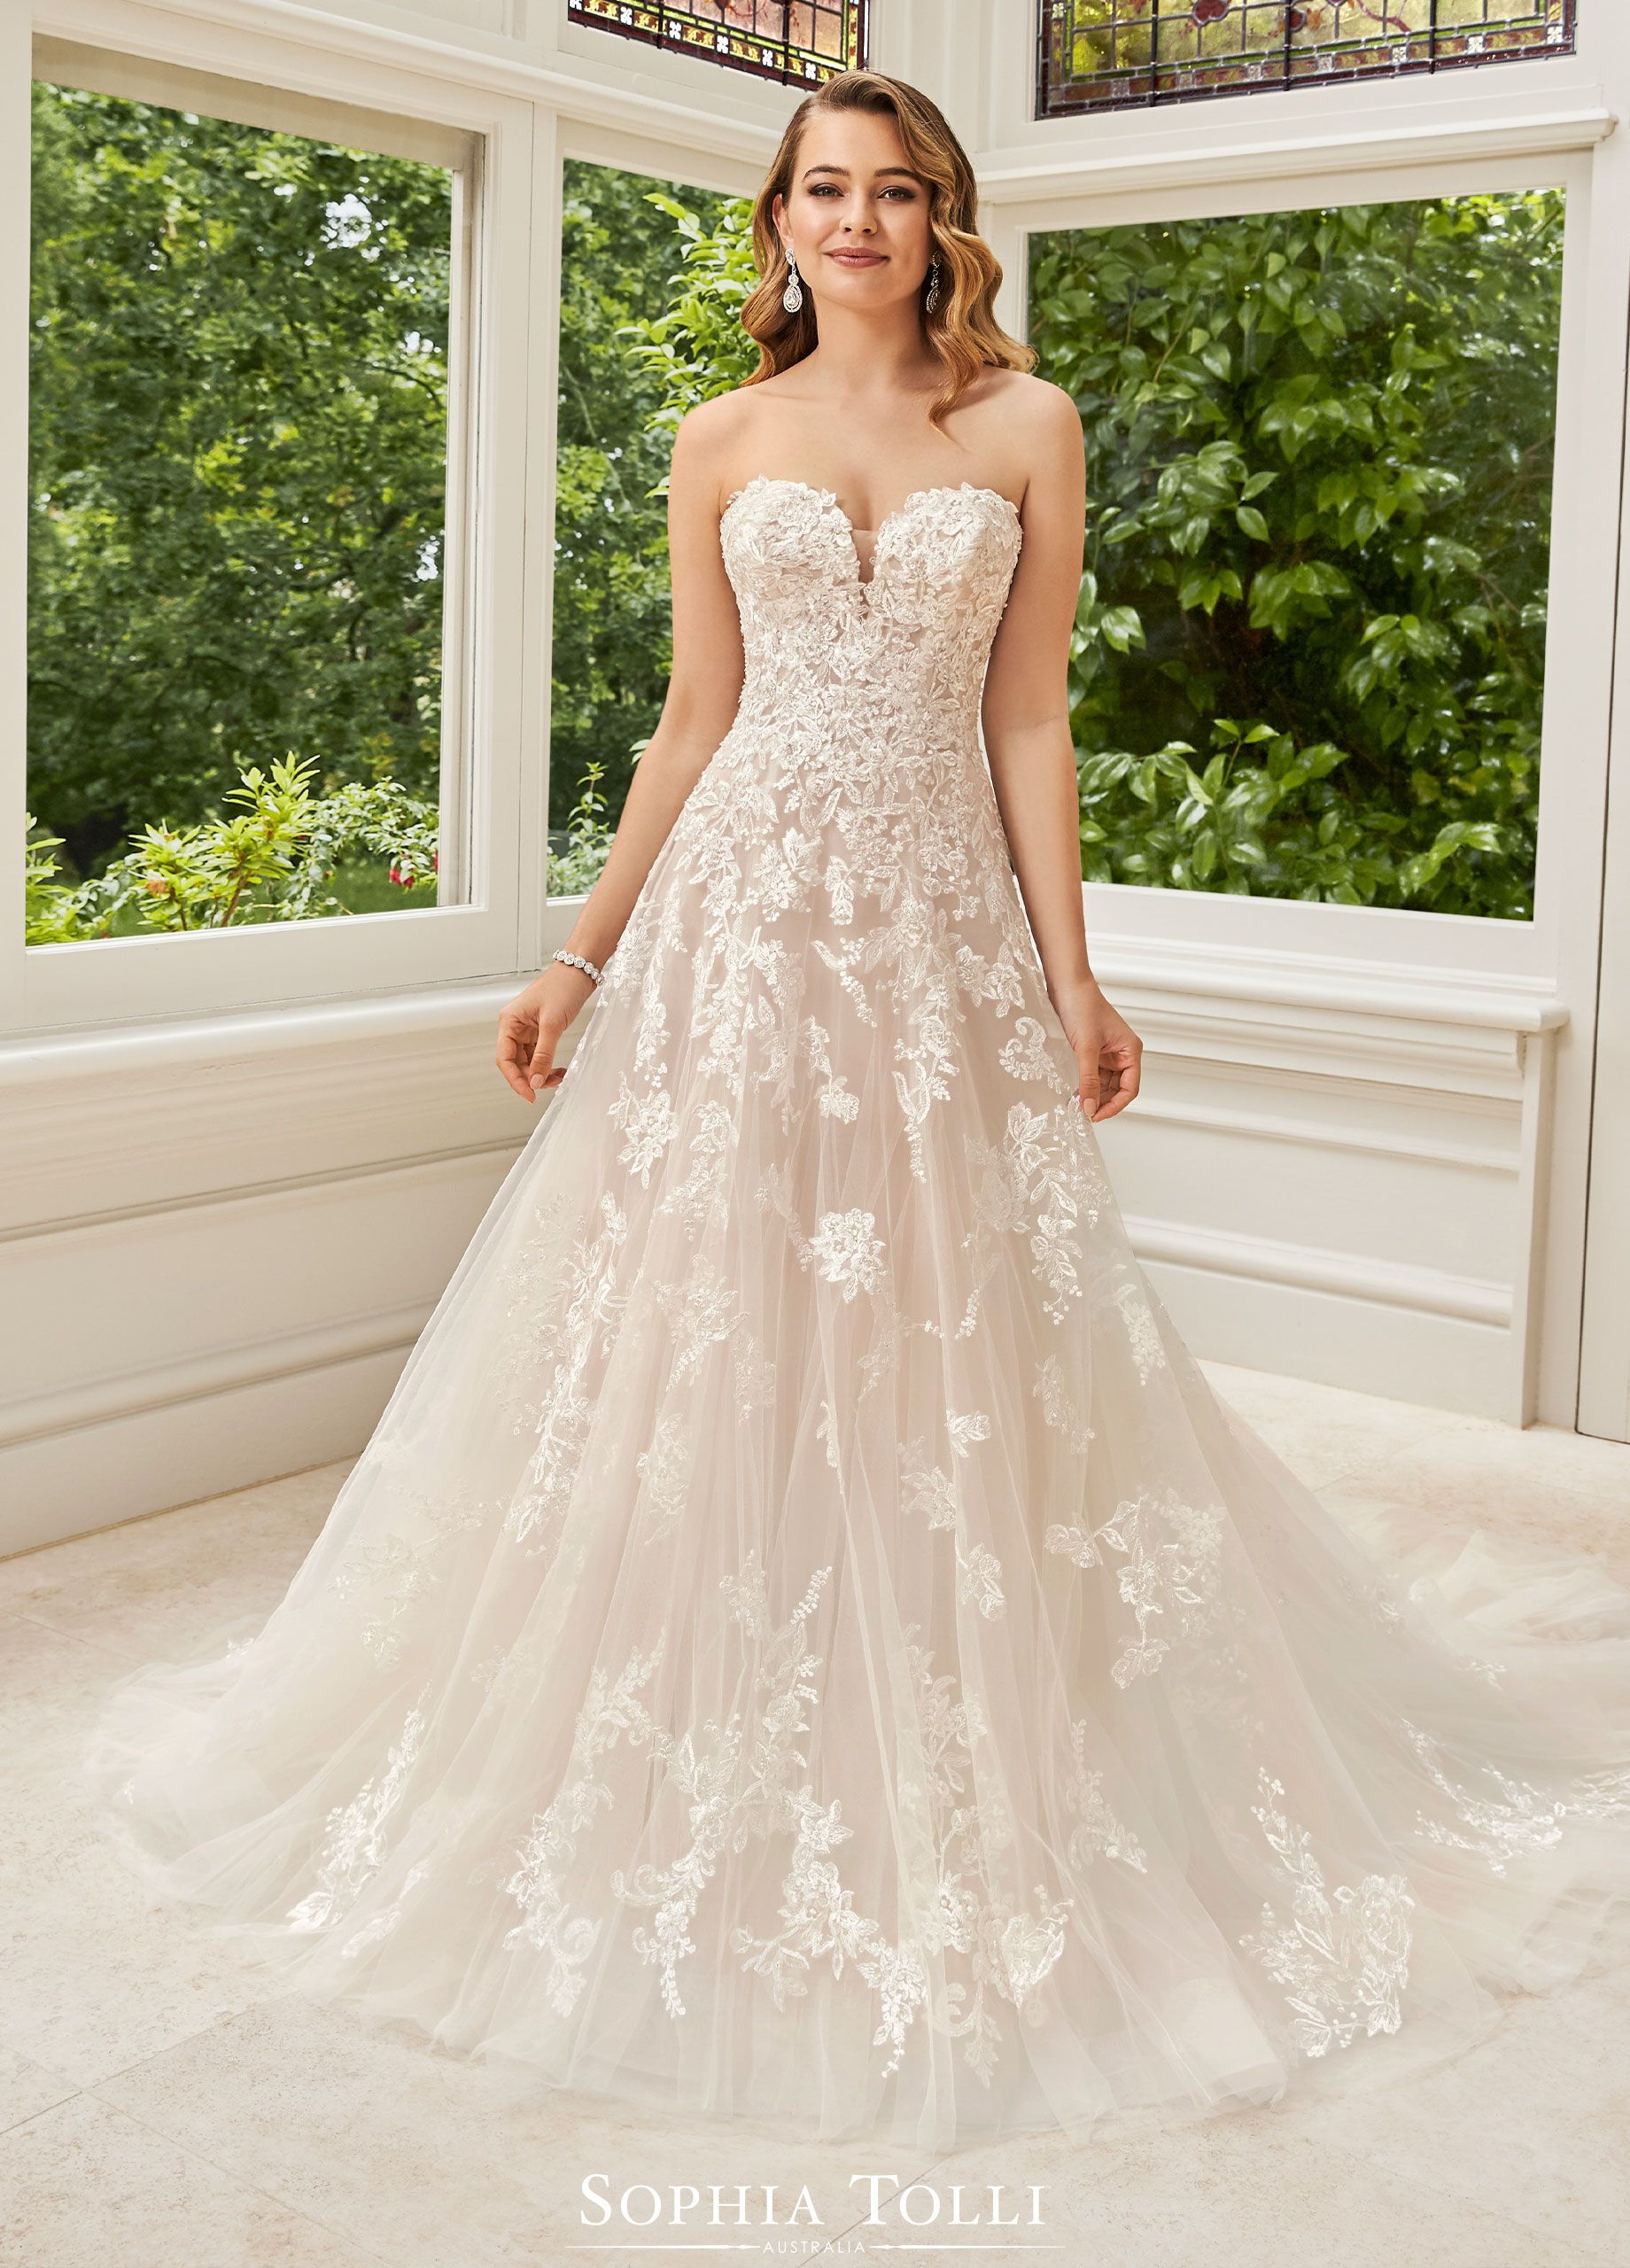 Sophia Tolli Wedding Gowns Y21971 Rosa In 2020 Vintage Style